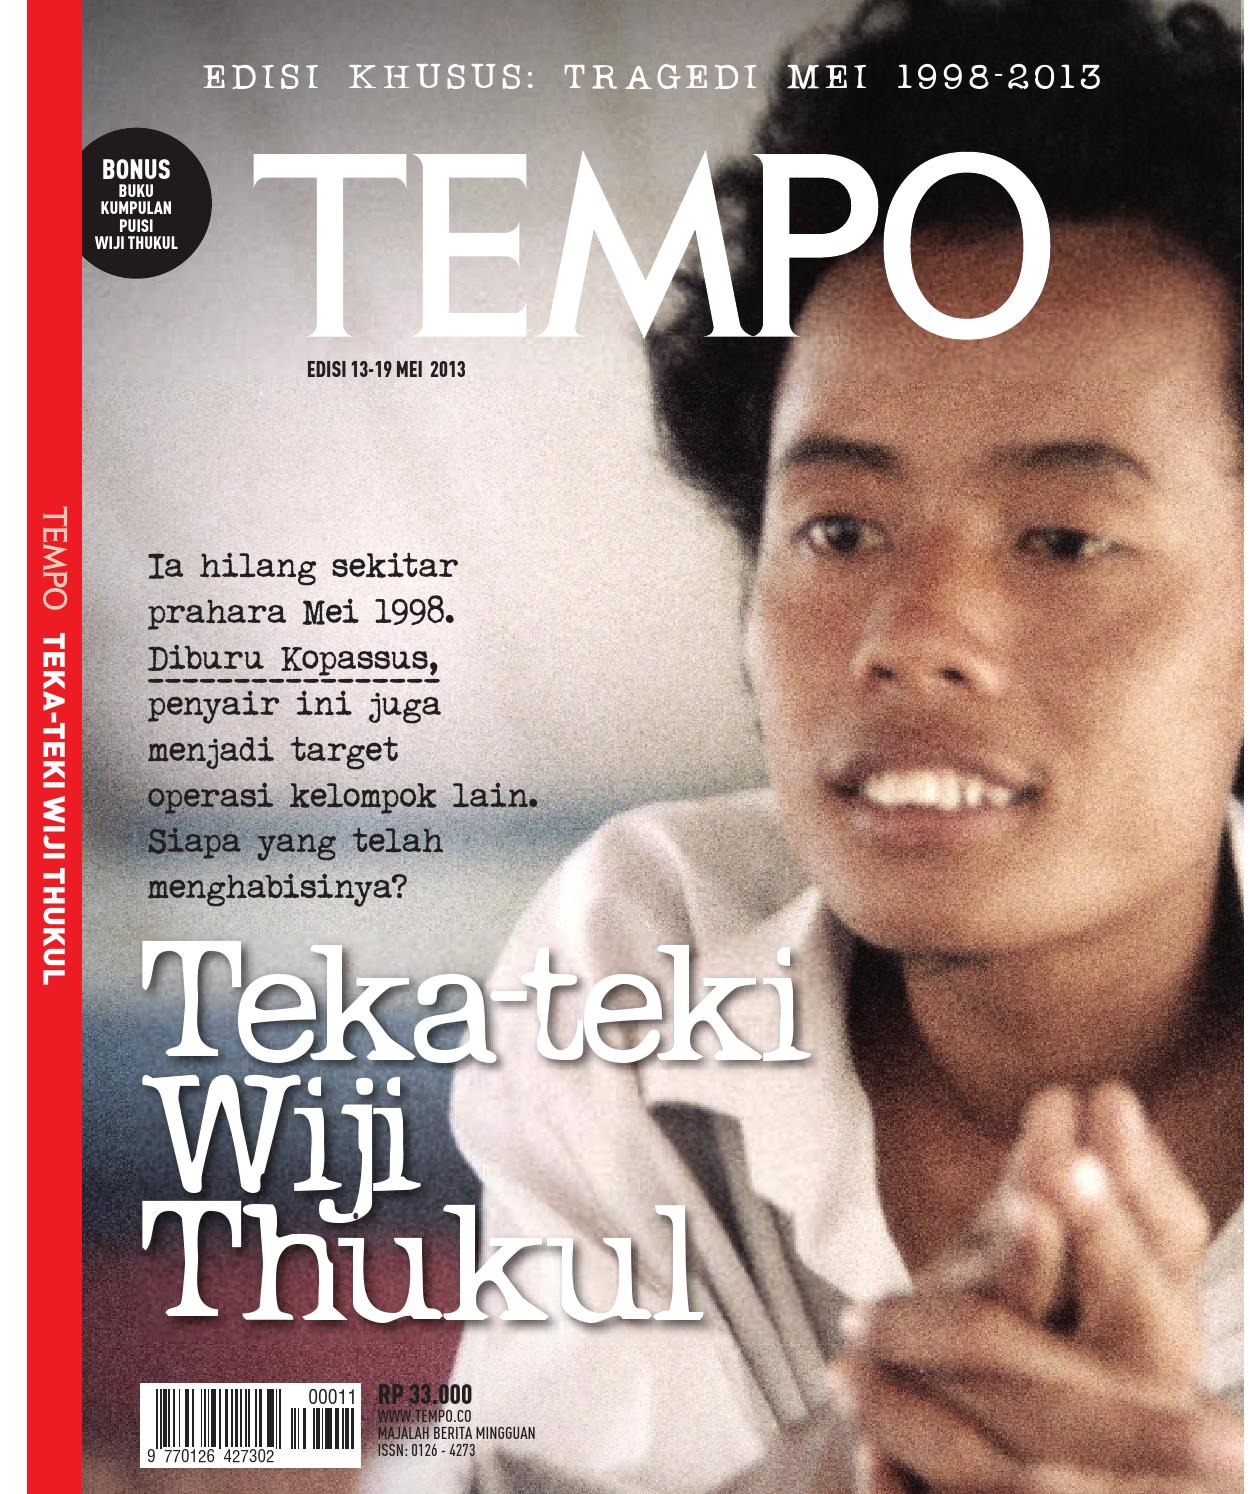 Tempo Edisi Khusus Wiji Thukul 13 19 Mei 2013 By Iwan Library Issuu